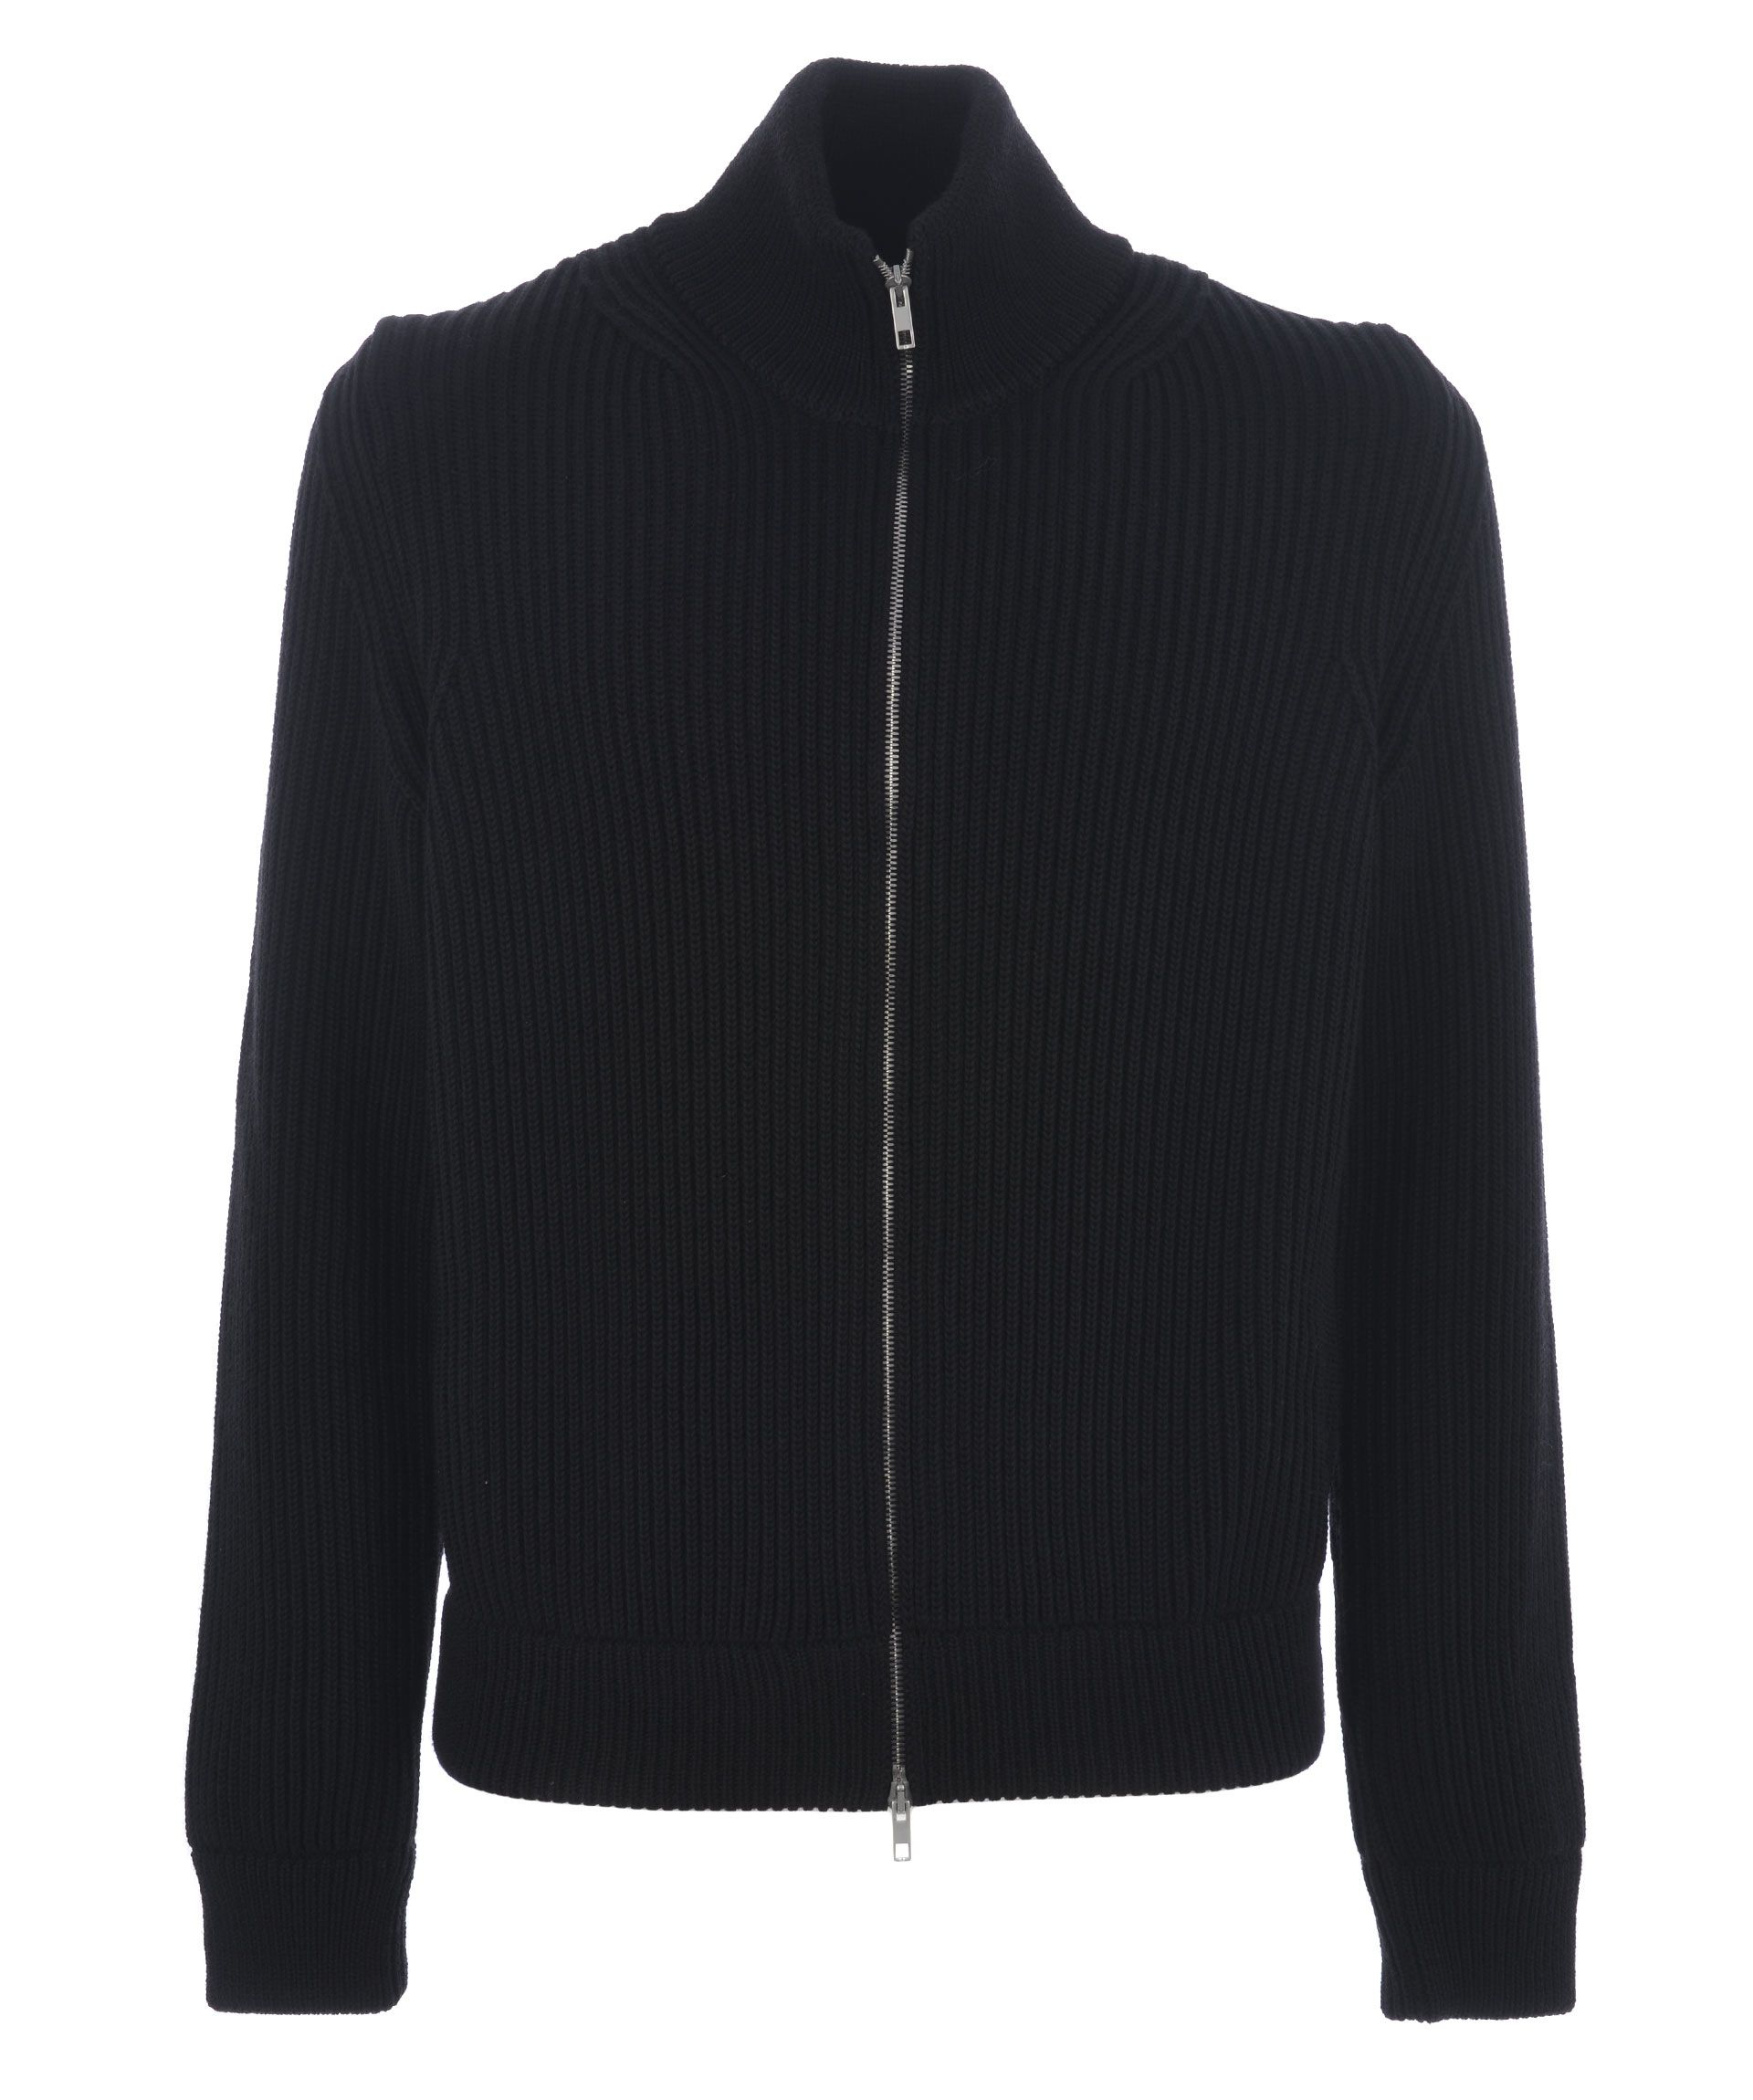 Maison Margiela Zipped Knitted Cardigan